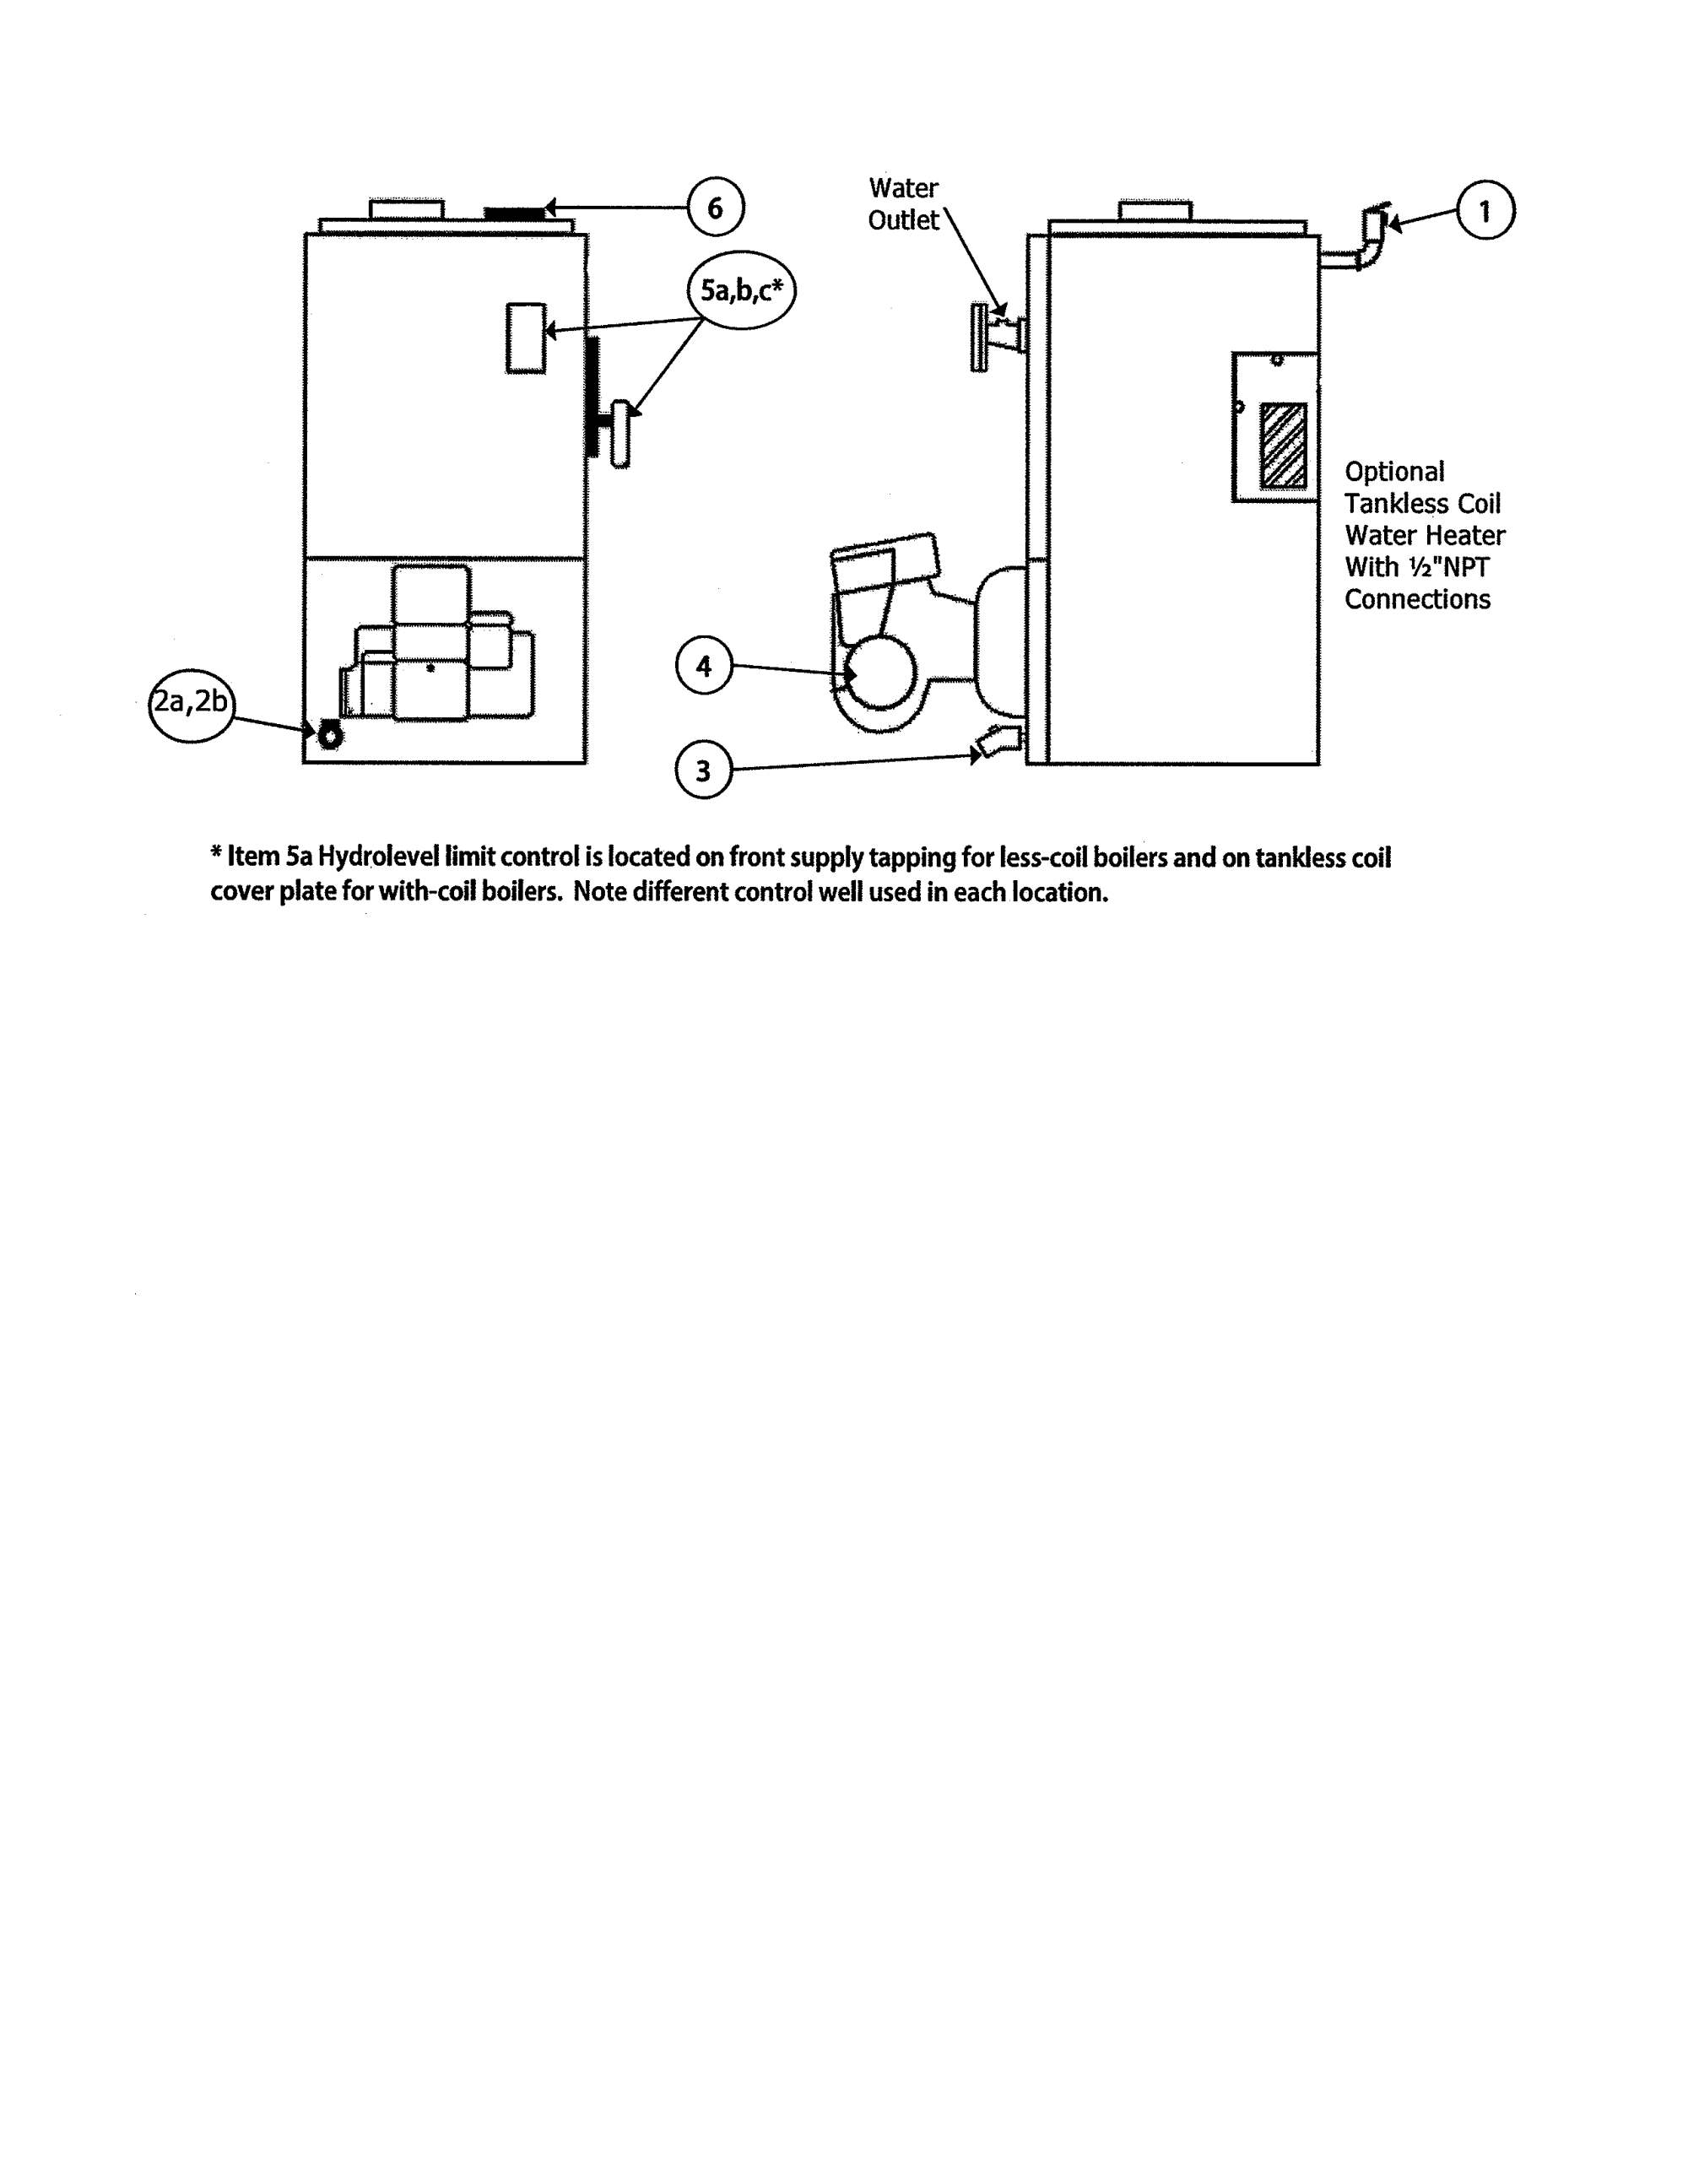 hight resolution of dunkirk 4ew150zbtp optional tankless coil water heater diagram